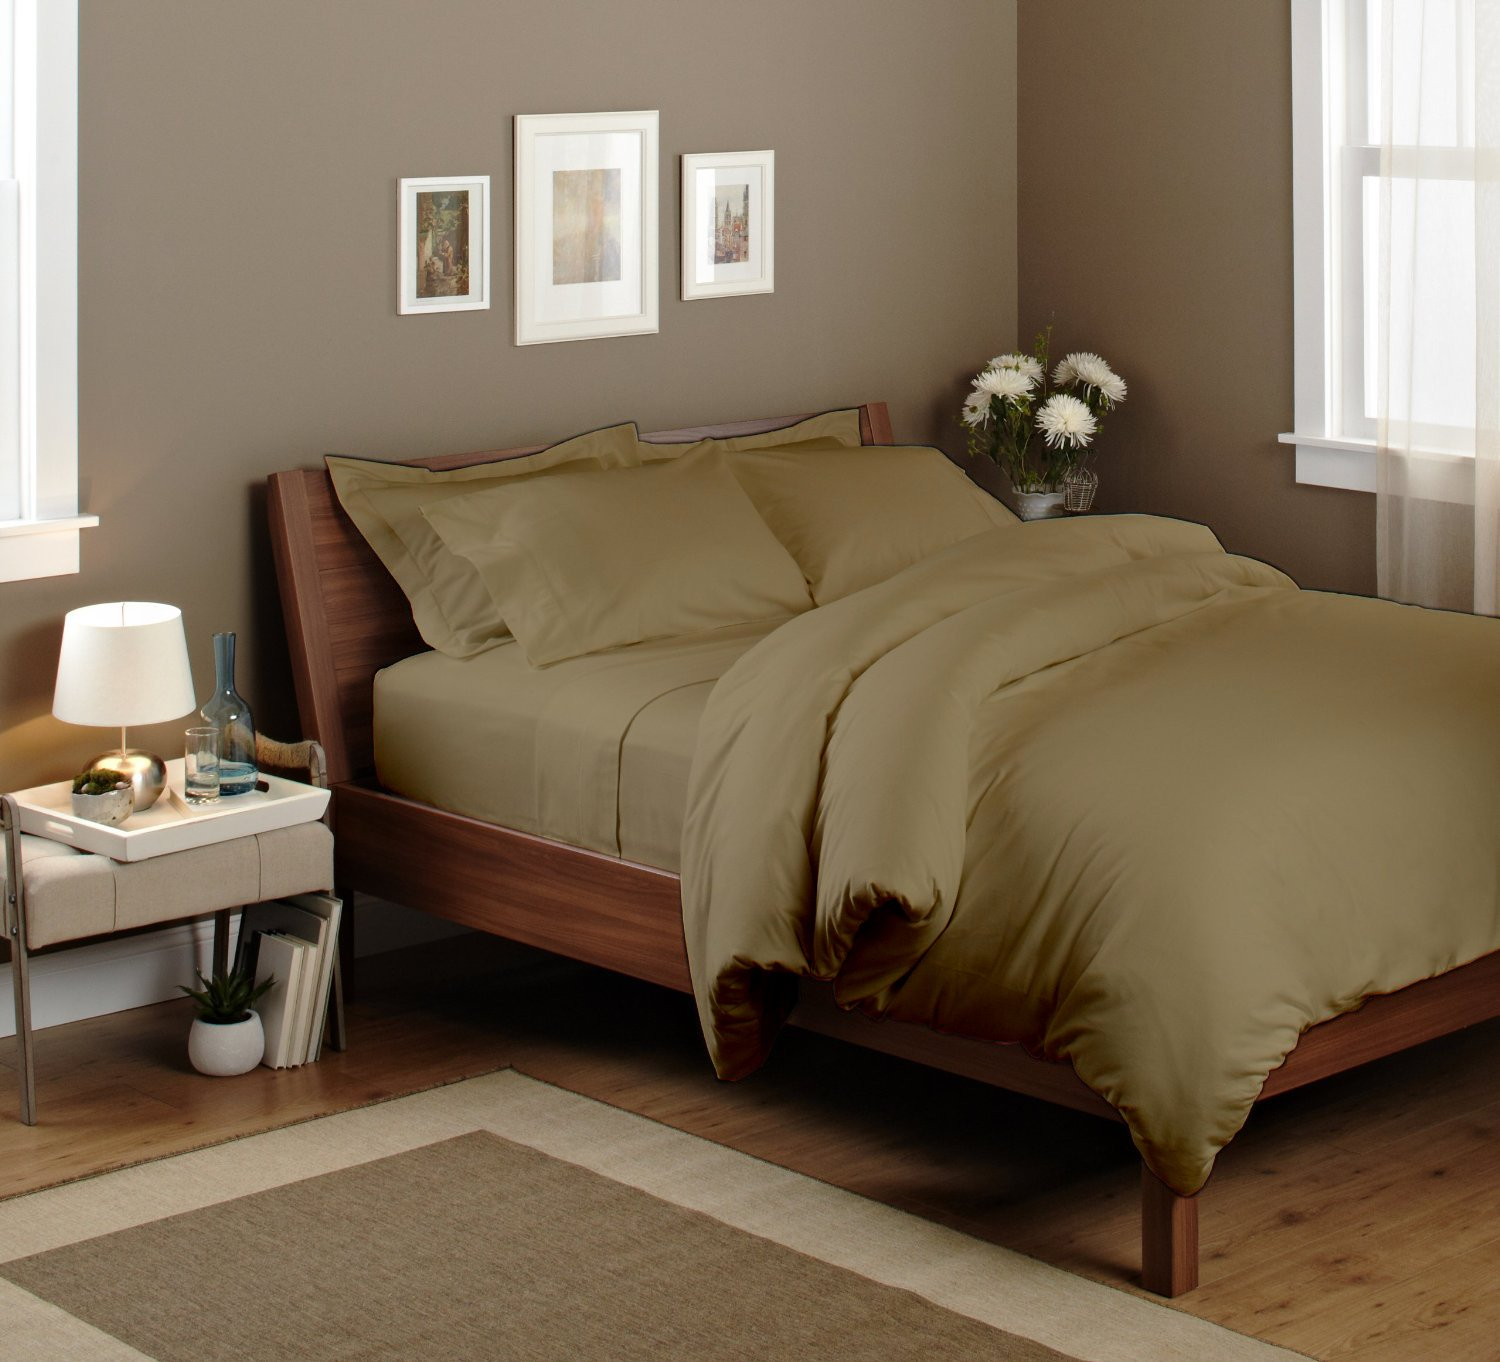 600 thread count extra luxury Ultra-soft Rainbow Circo long stapled Egyptian cotton 15 inch sheet set a feel that you will never fagot italian finish bedding collection made in India King Taupe